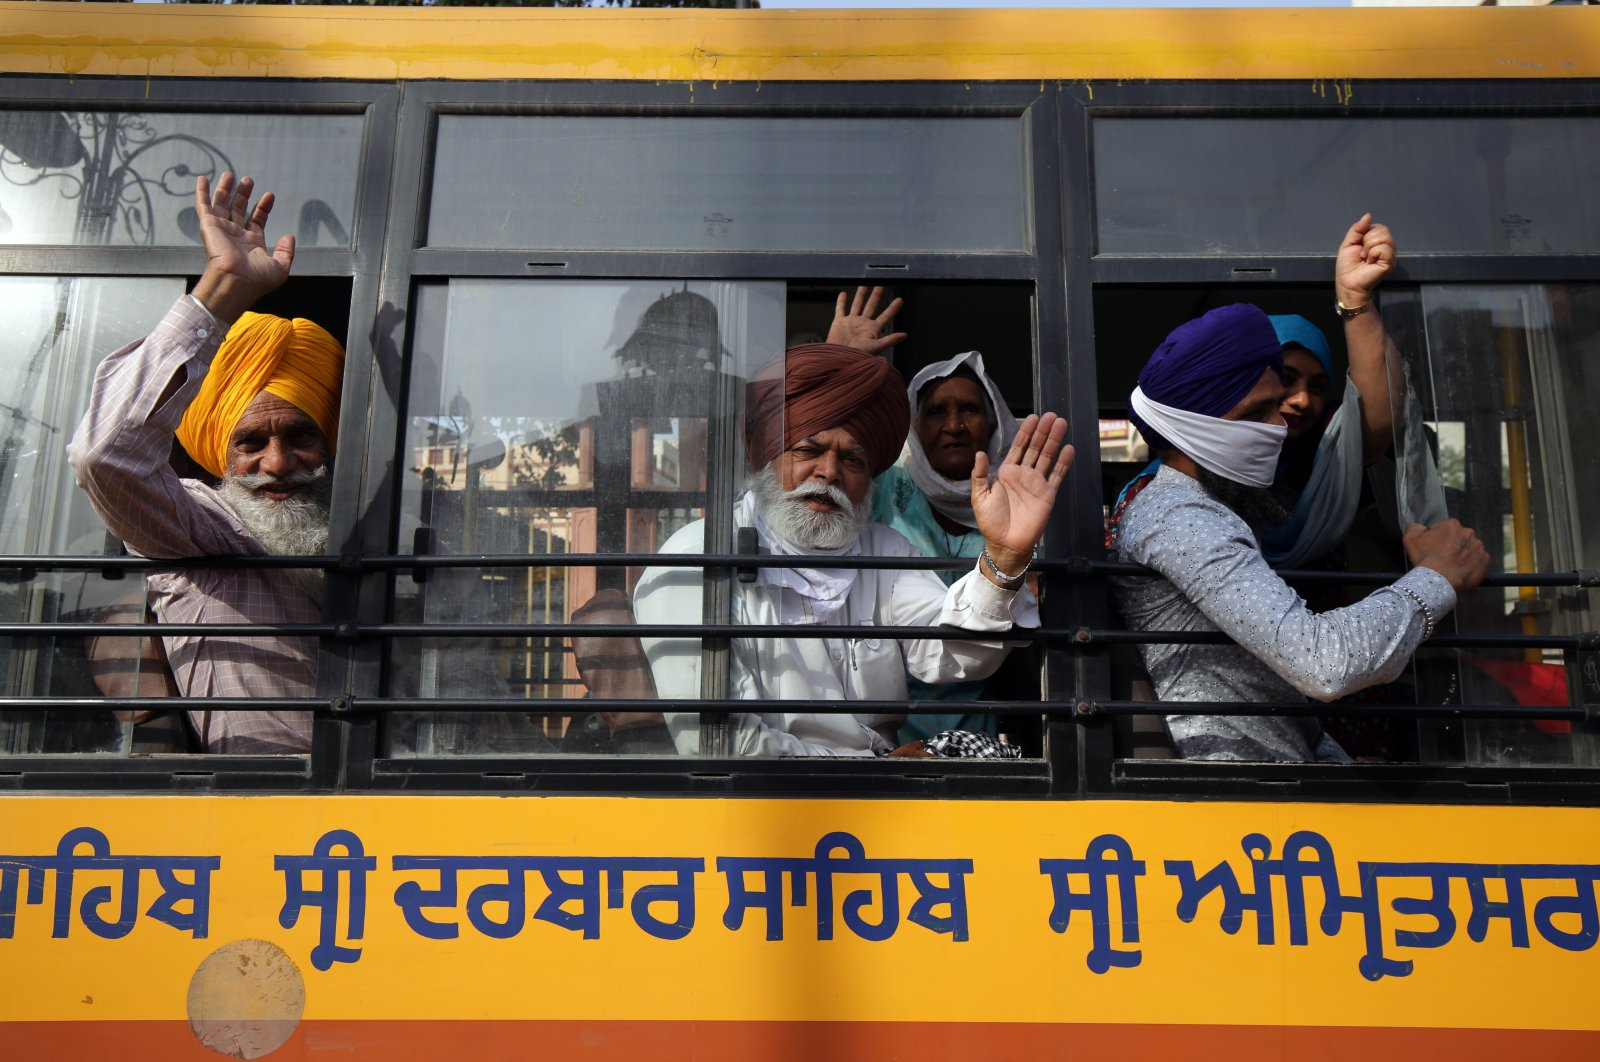 Sikh devotees wave from inside a bus as they leave for the border to cross into Pakistan to take part in the Baisakhi festival religious festivities, in Amritsar, India, 12 April, 2021. (EPA Photo)